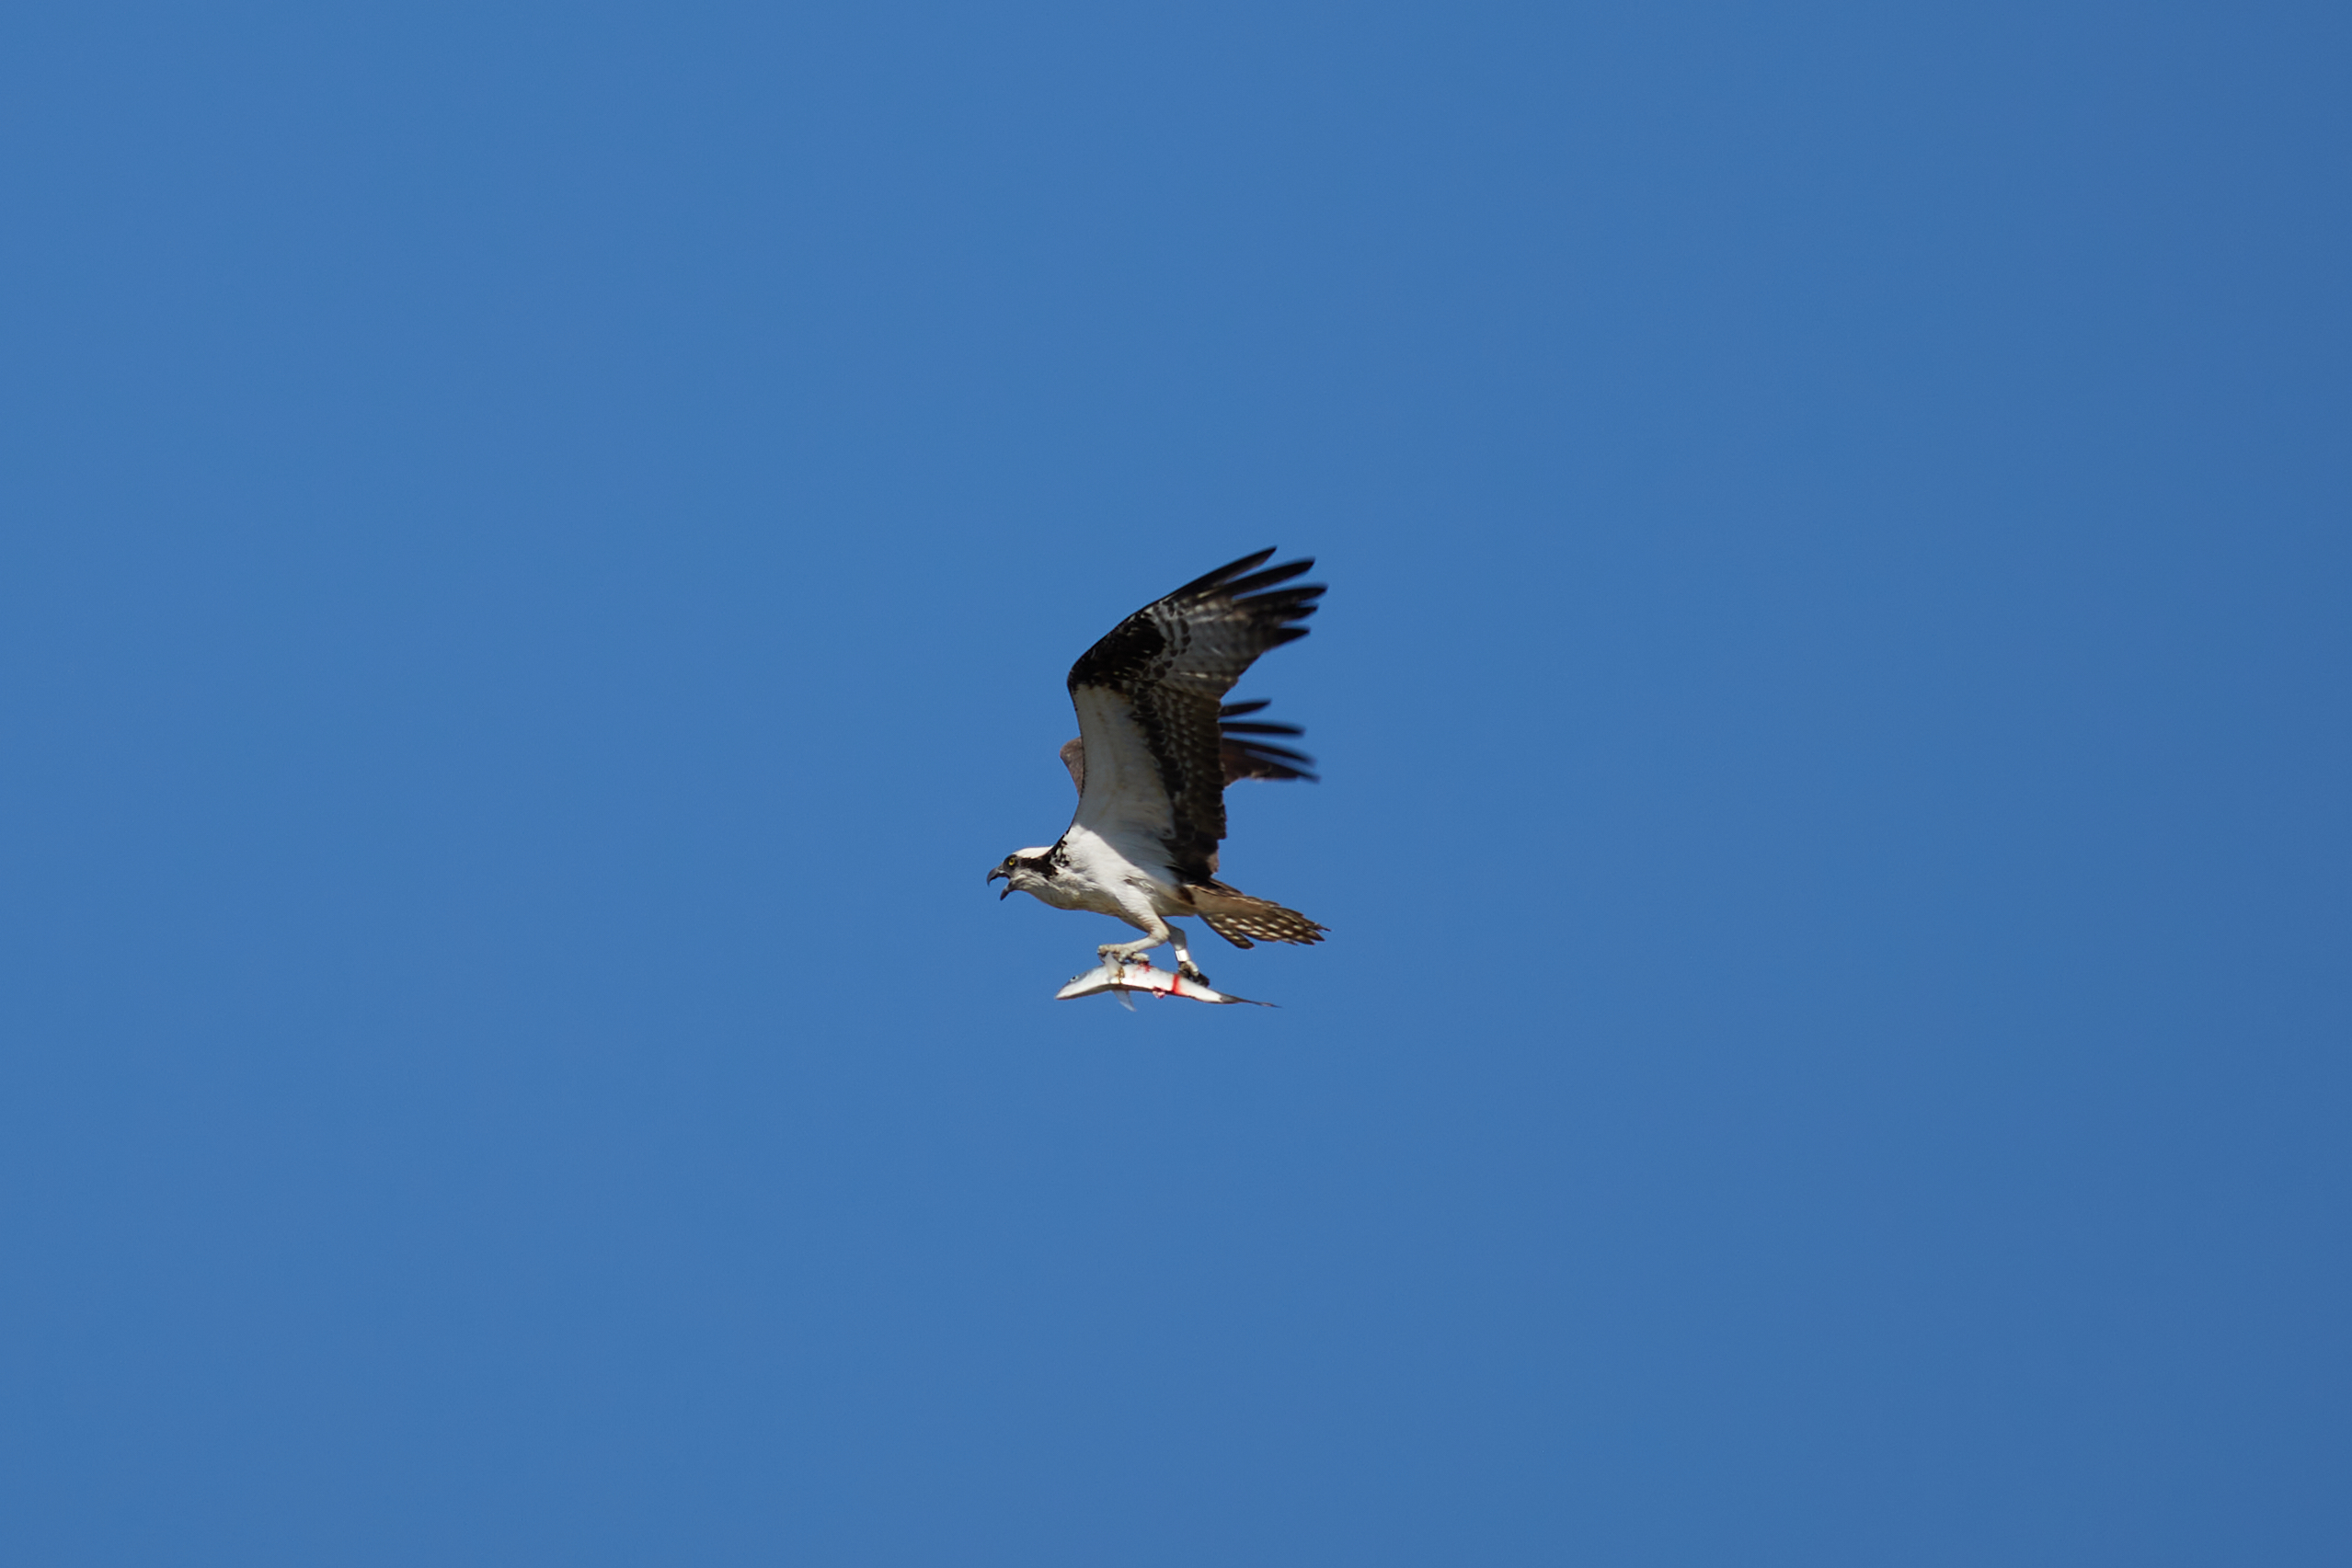 Osprey holding fish in its talons.